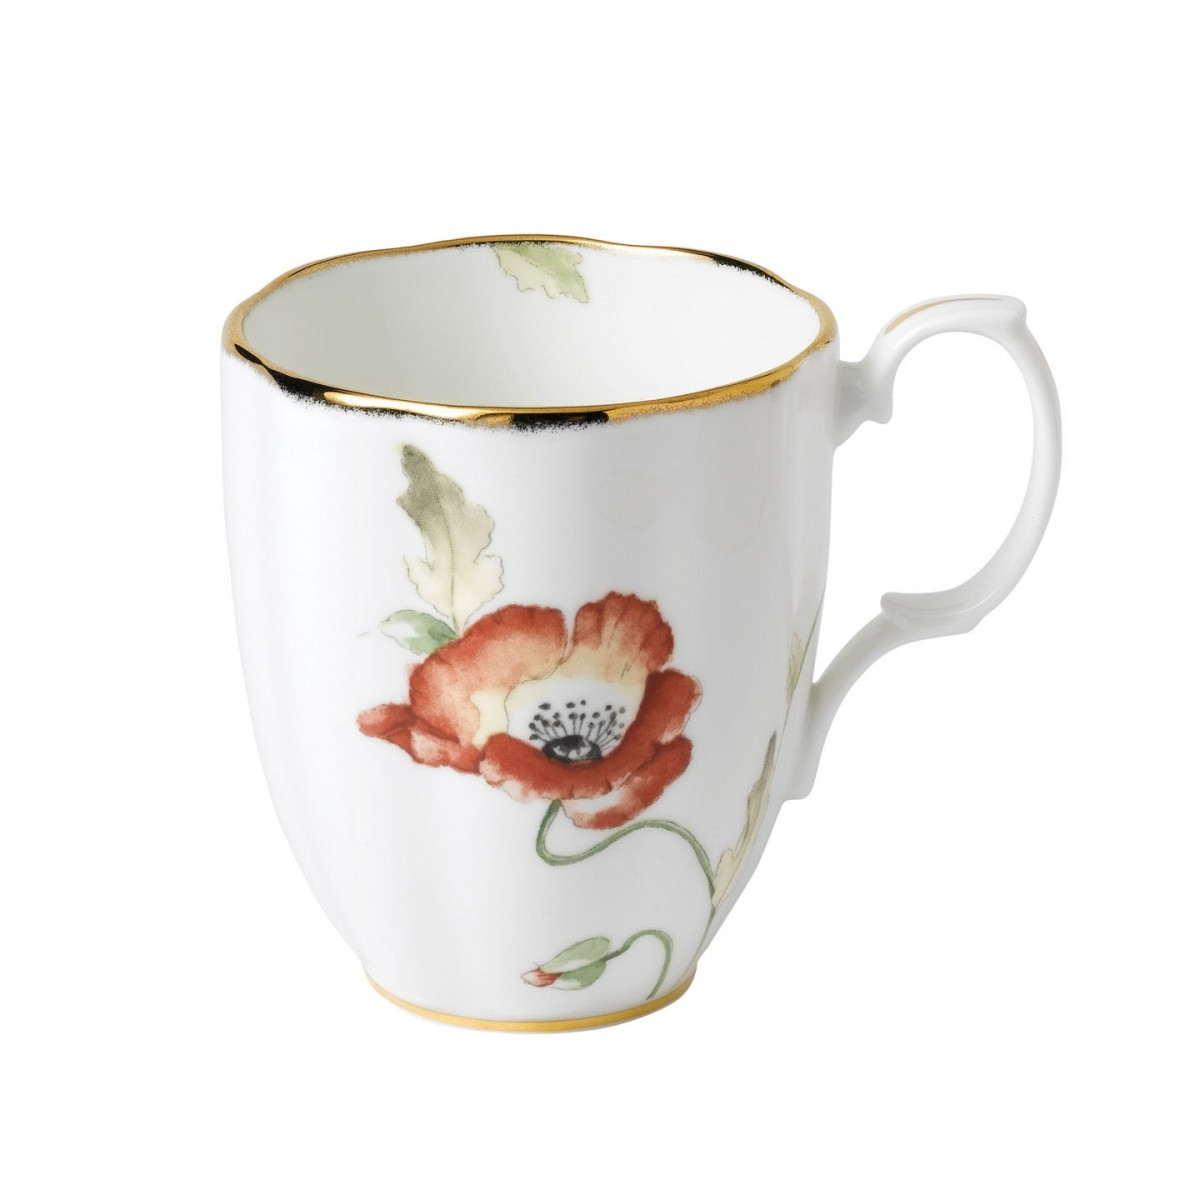 100 Years Of Royal Albert 1970 Poppy Mug